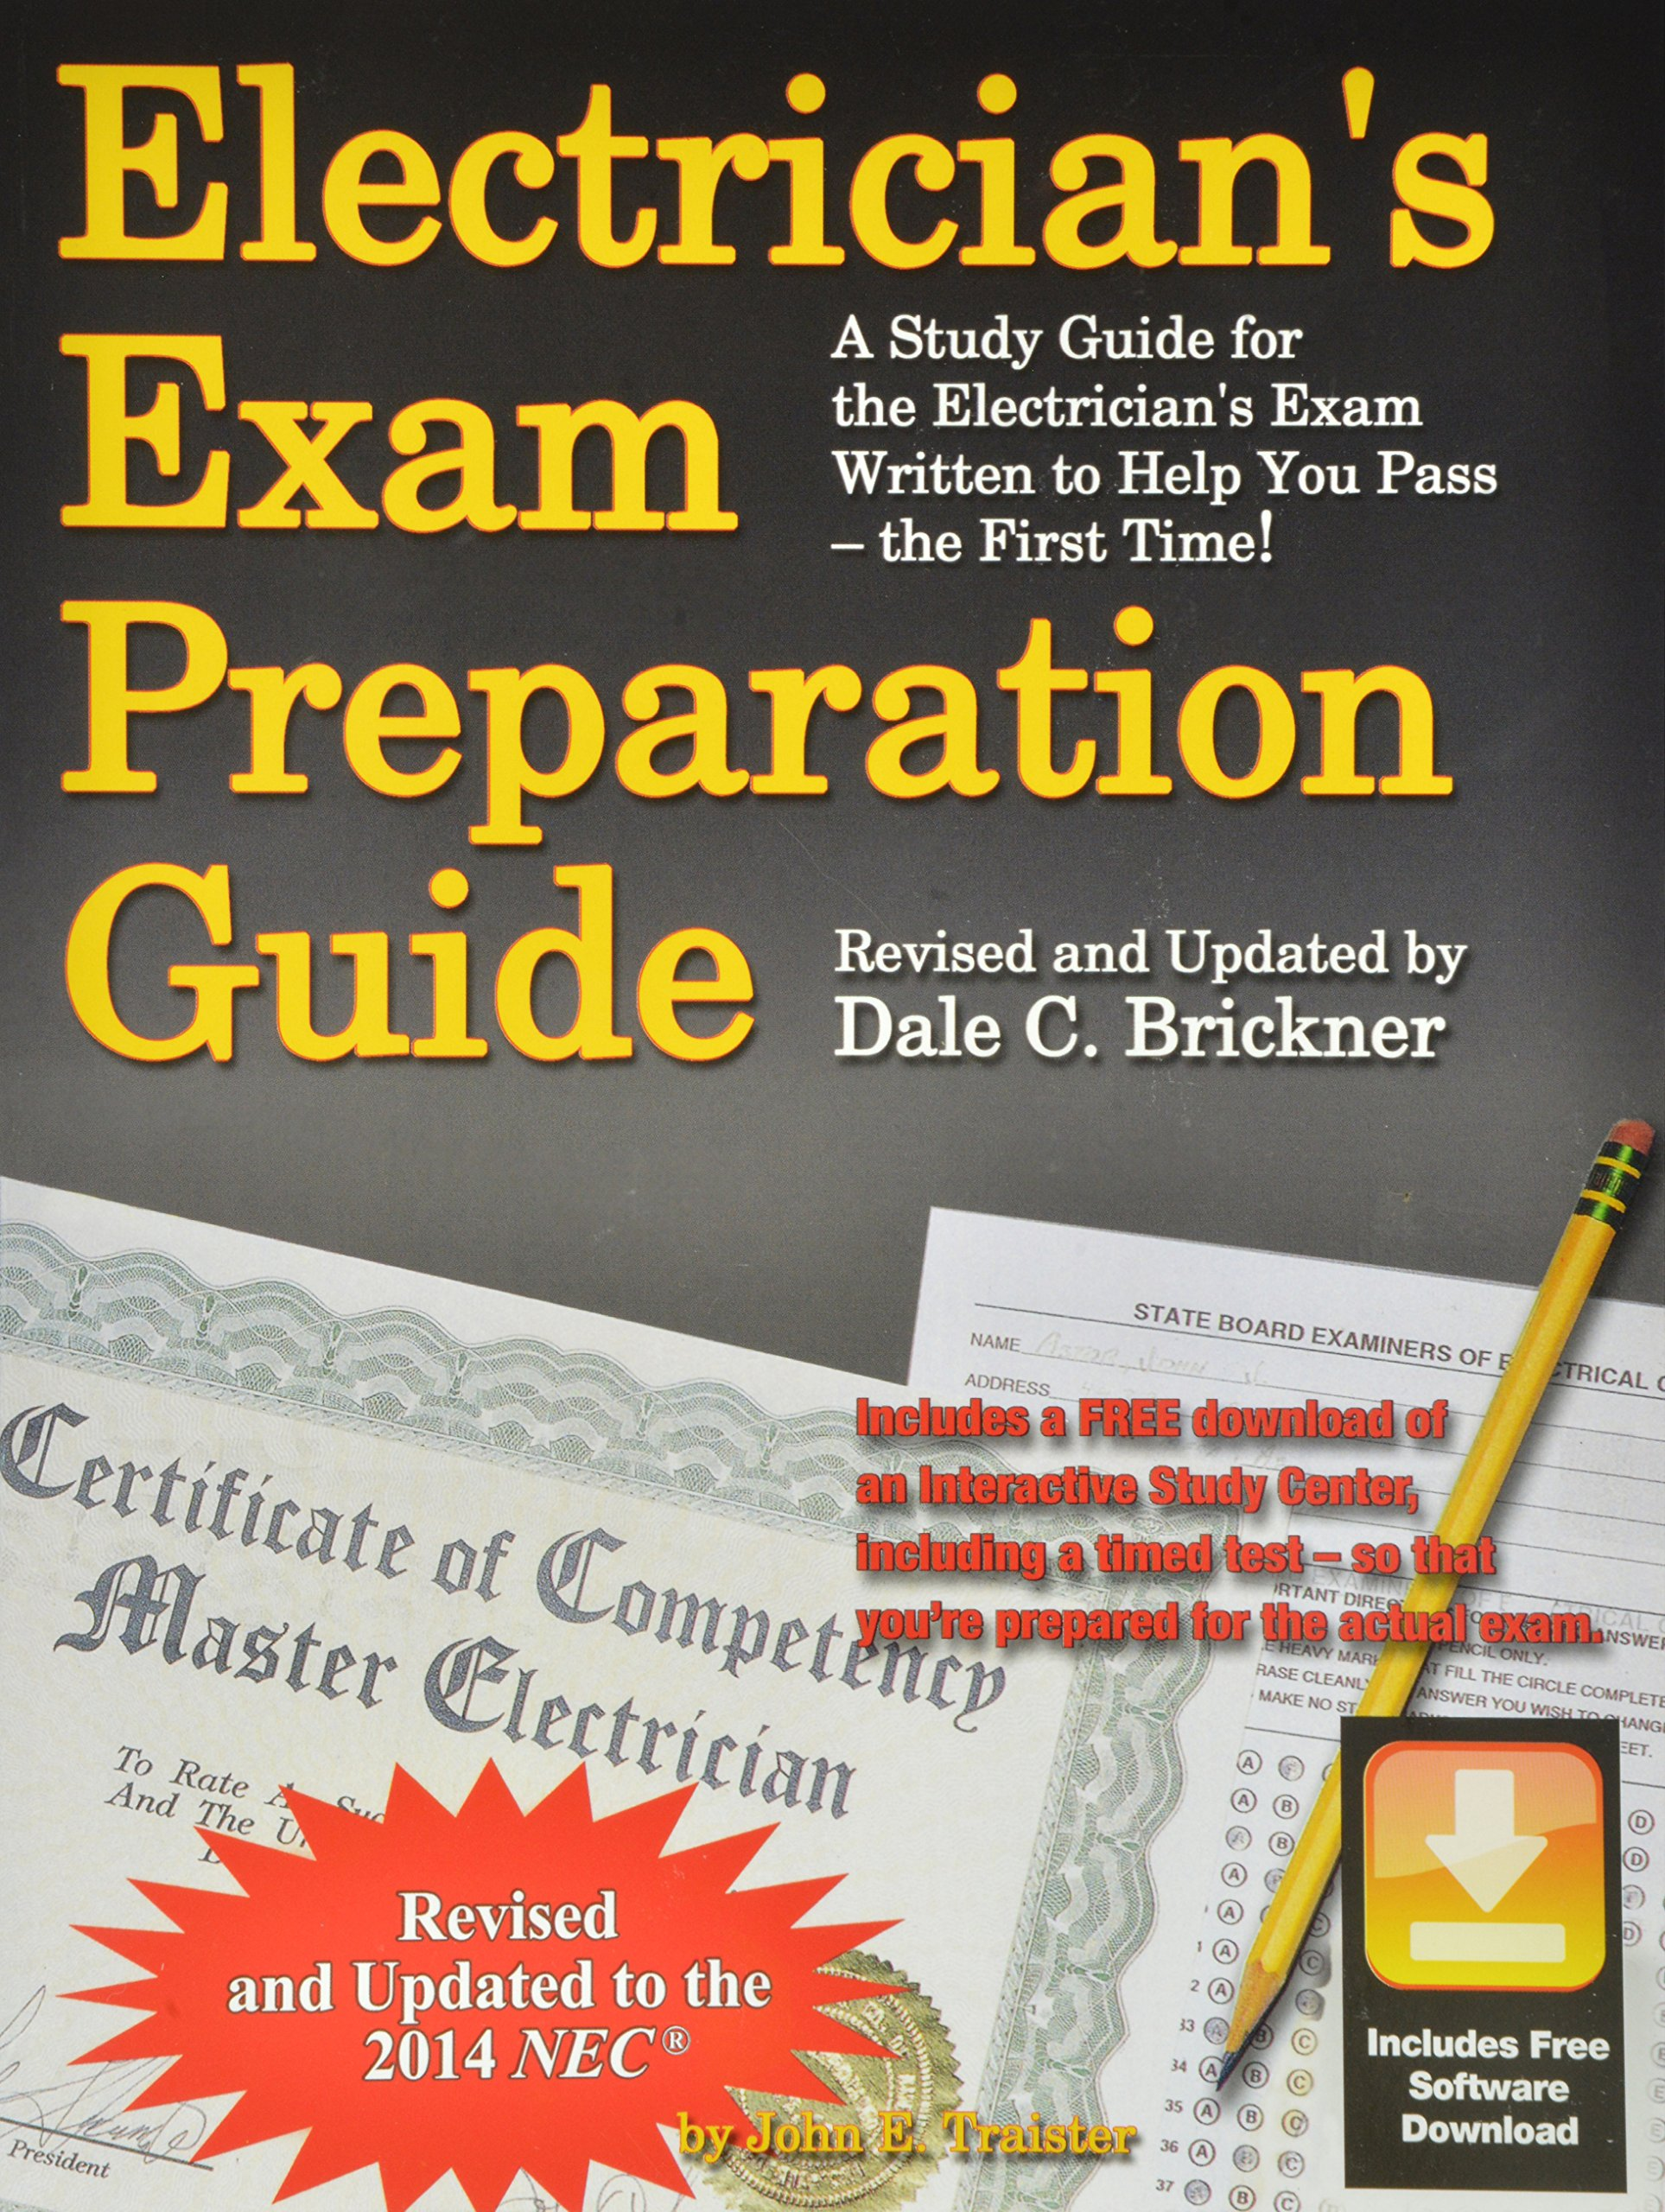 Electricians exam preparation guide to the 2014 nec john e electricians exam preparation guide to the 2014 nec john e traister 9781572183032 amazon books xflitez Image collections